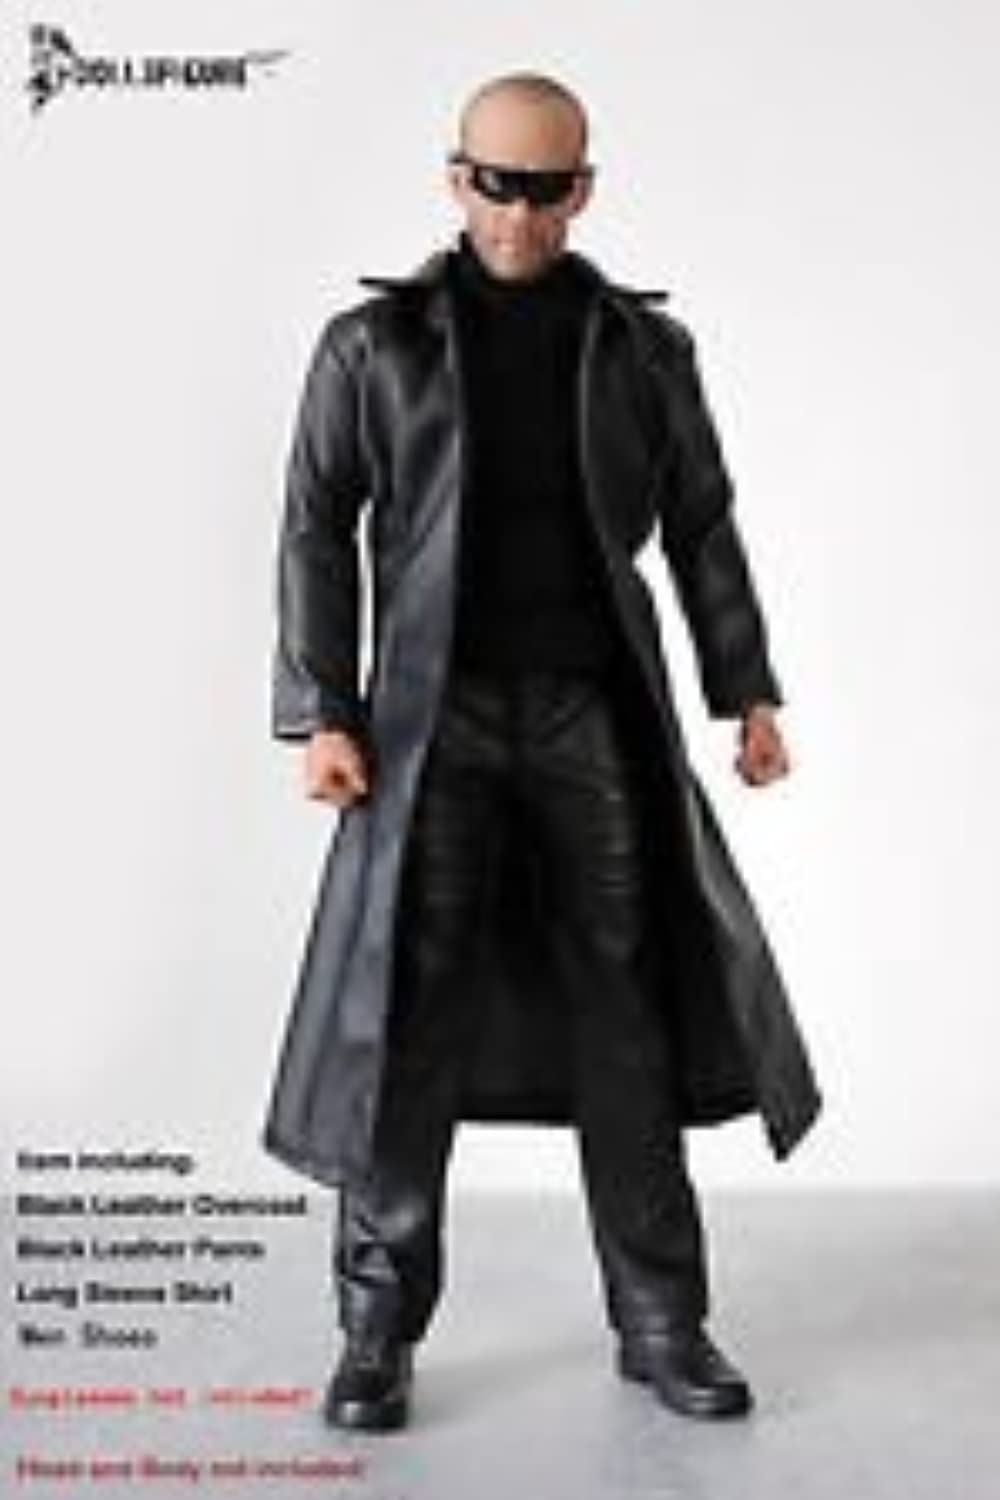 男性用レザーオーバーコートセット Artcreator_BM FT014 DOLLSFIGURE 1/6 Scale Action Figure Clothing (Long coat,shirt,pants) set シューズがジョイントタイプ